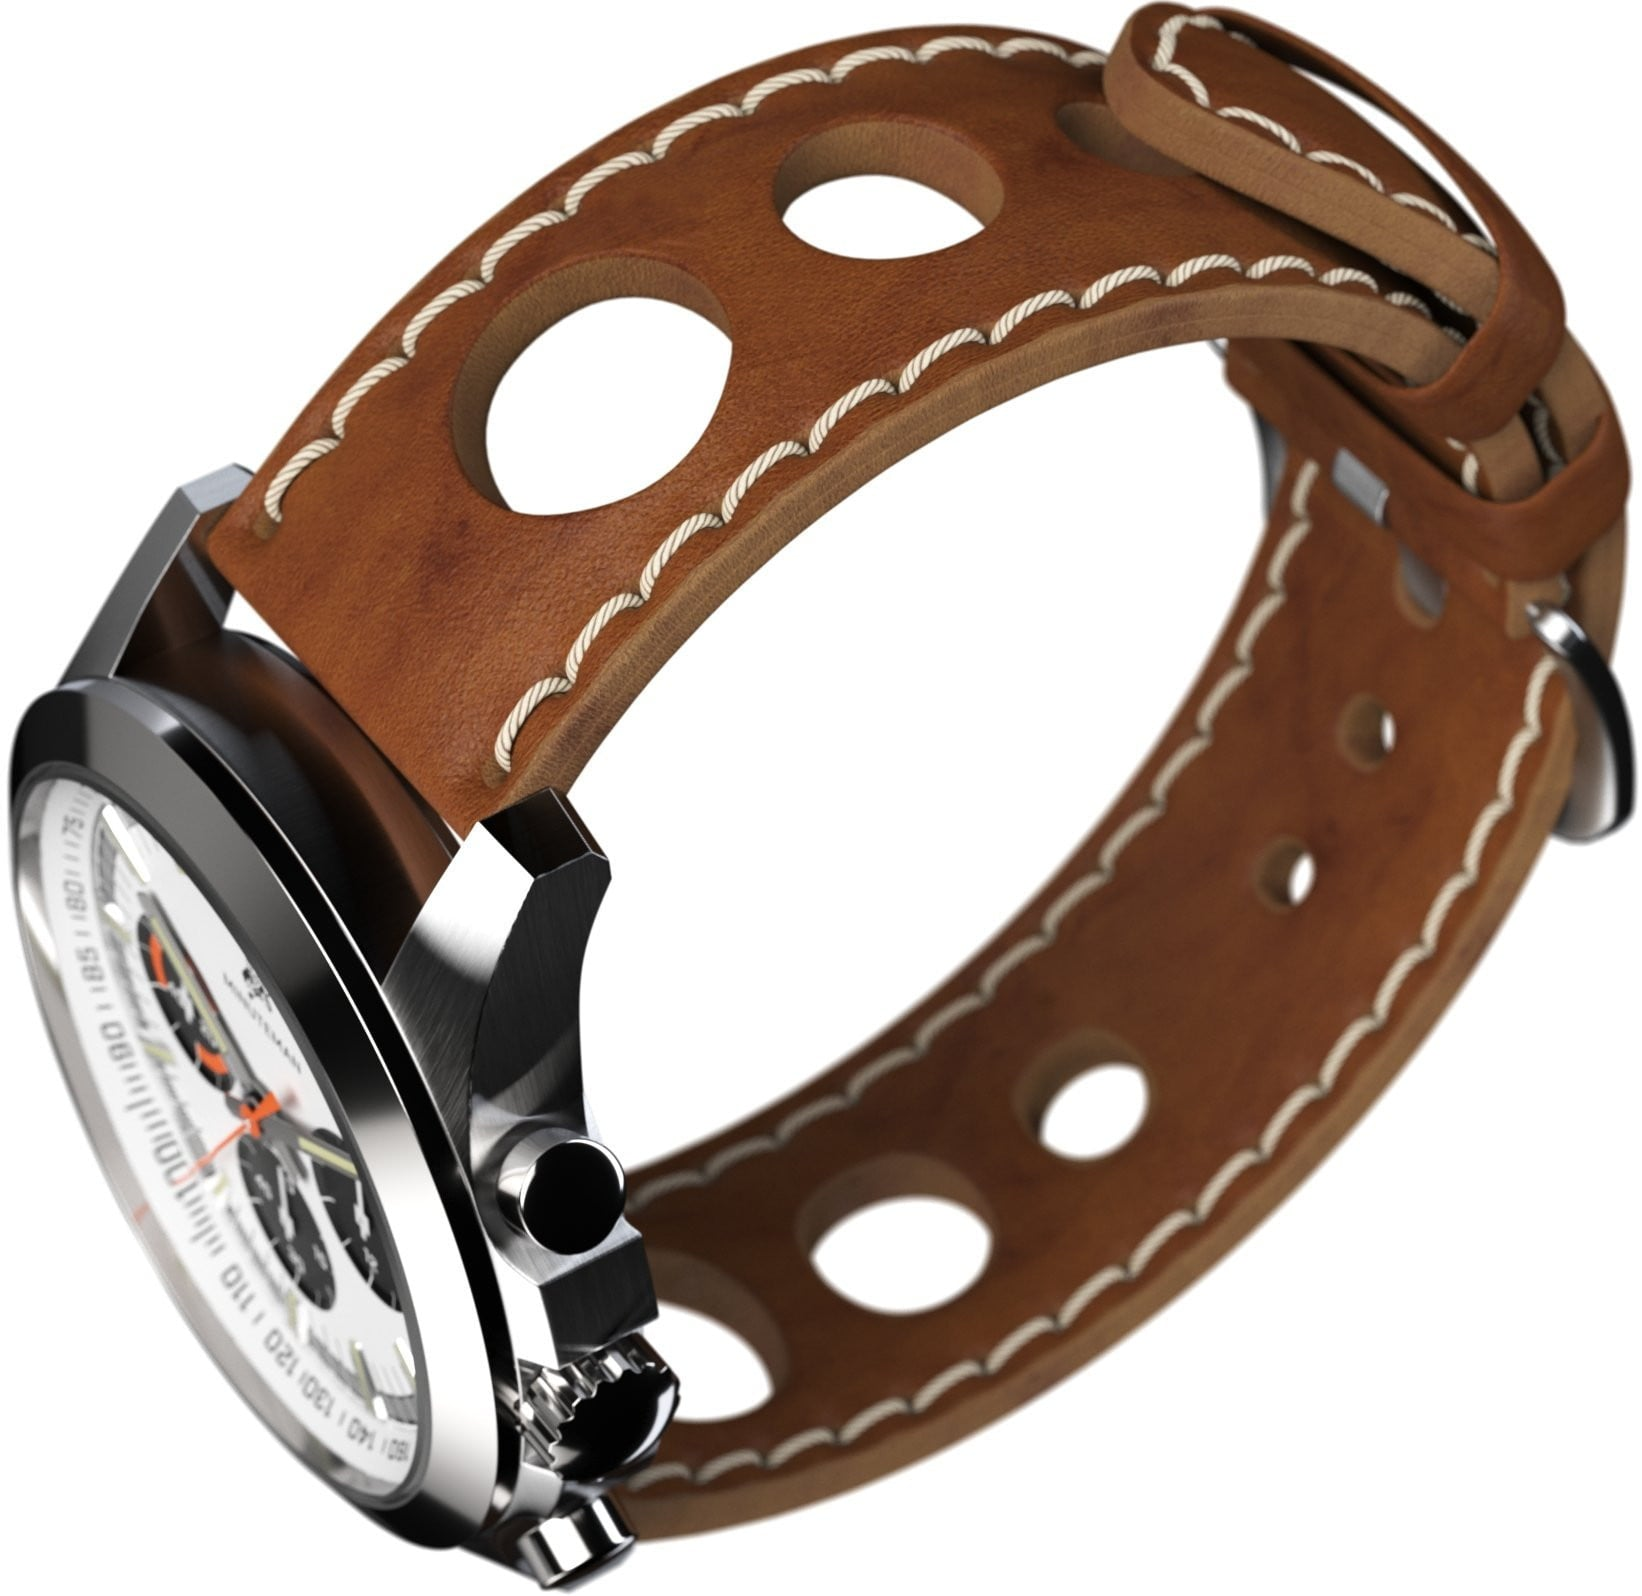 Minuteman Parker Chronograph Watch Brown Leather Strap Brushed Panda Dial,minutemanwatches,Minuteman,Wrist Watch